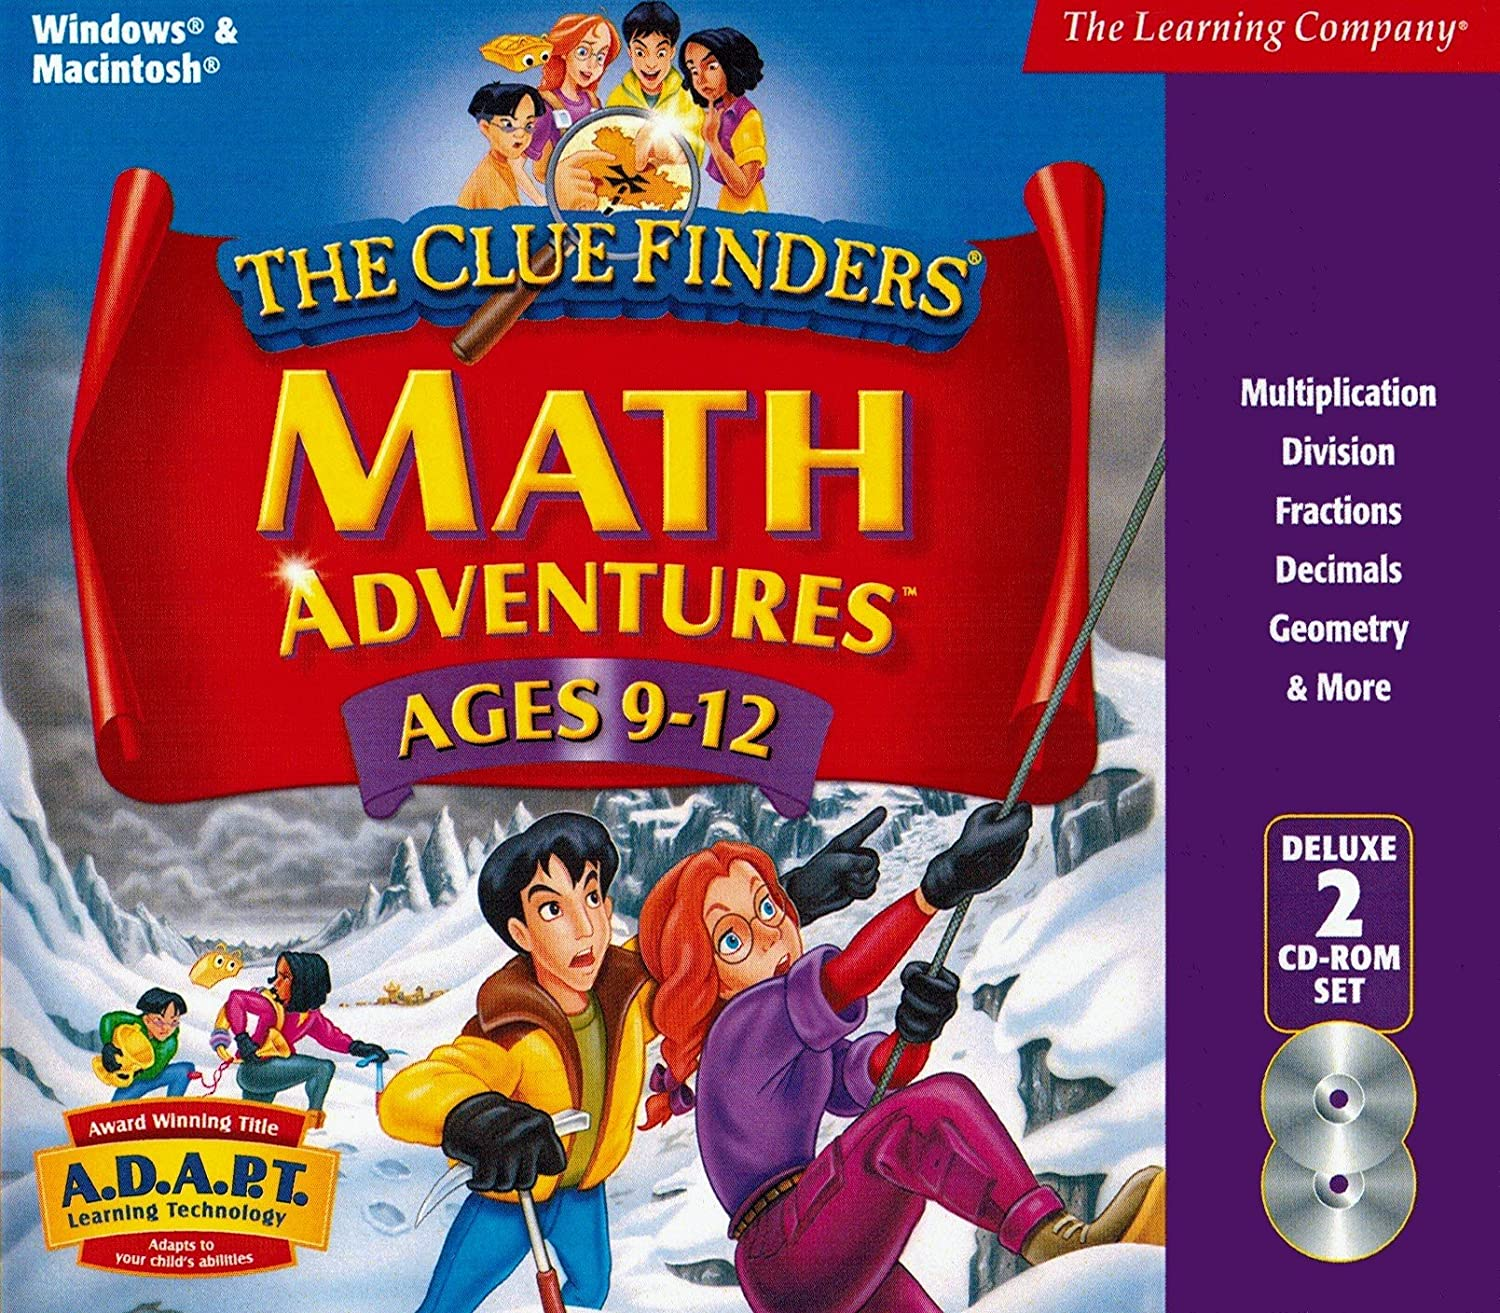 Cluefinders Math Adventures Ages 9-12 Deluxe 91ASMdn2BNXL